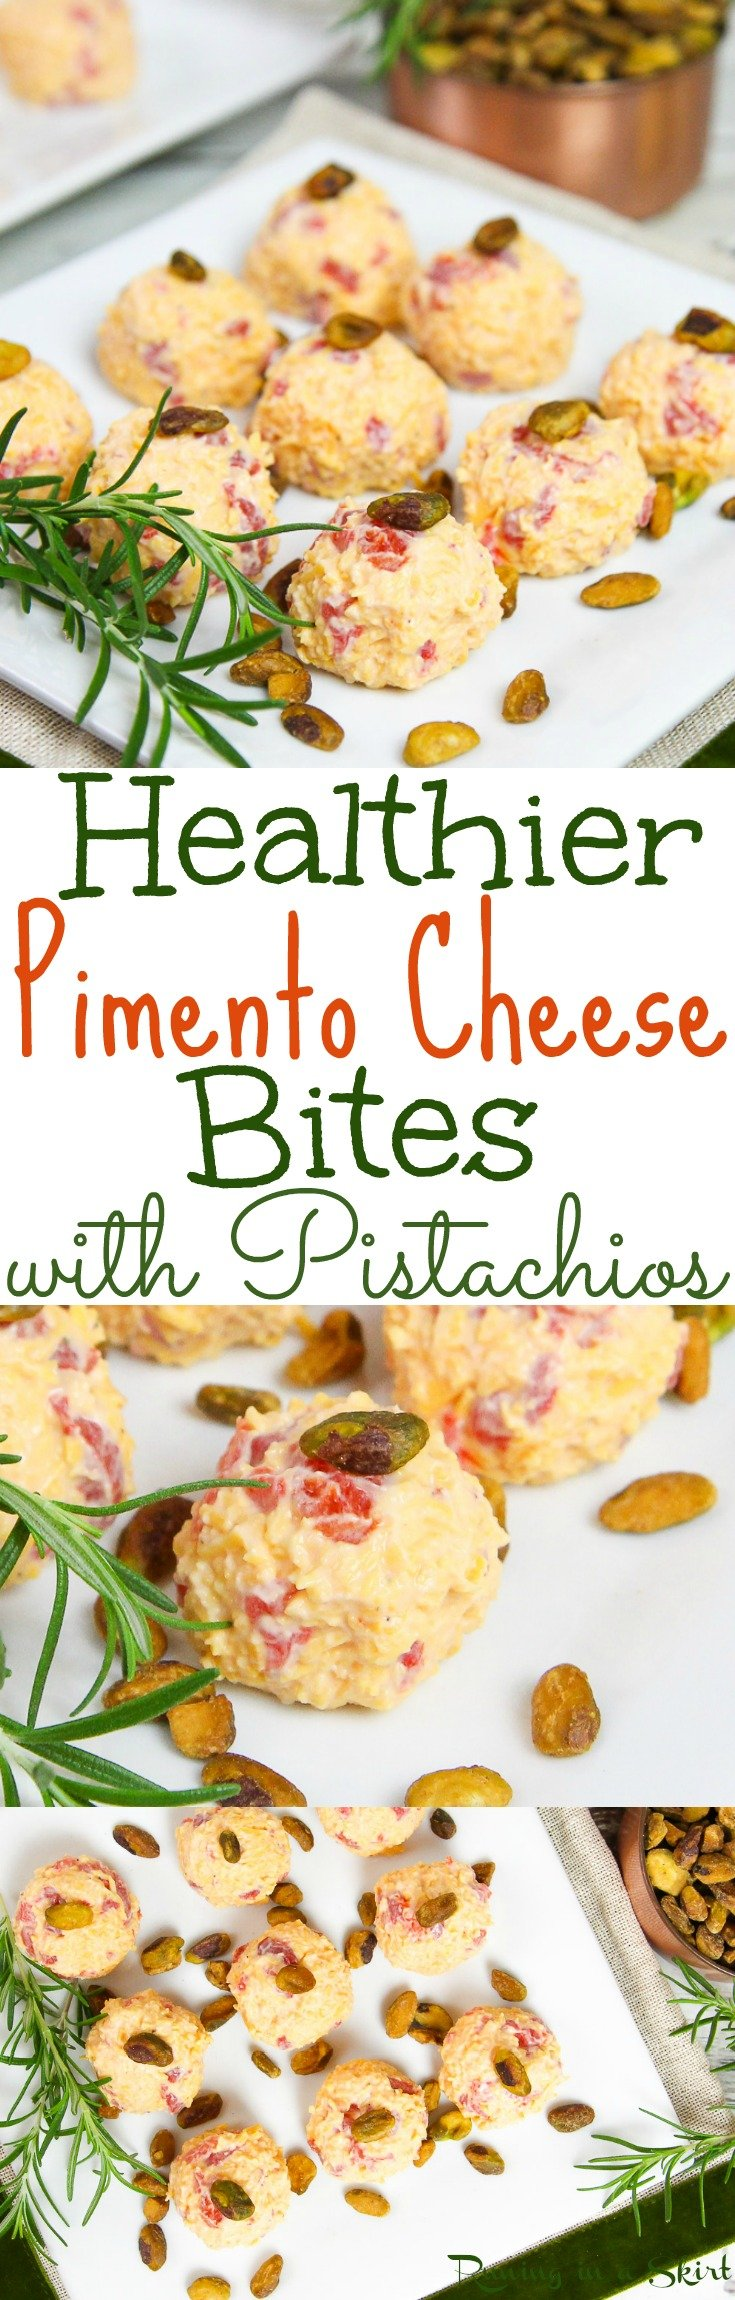 Healthier Pimento Cheese Bites recipe with Pistachios! A fun, easy and healthy Christmas appetizer idea for a party.  Uses greek yogurt instead of mayonnaise. They are like fun individual cheese balls.  Also great for Thanksgiving! Vegetarian & gluten free/ Running in a Skirt via @juliewunder